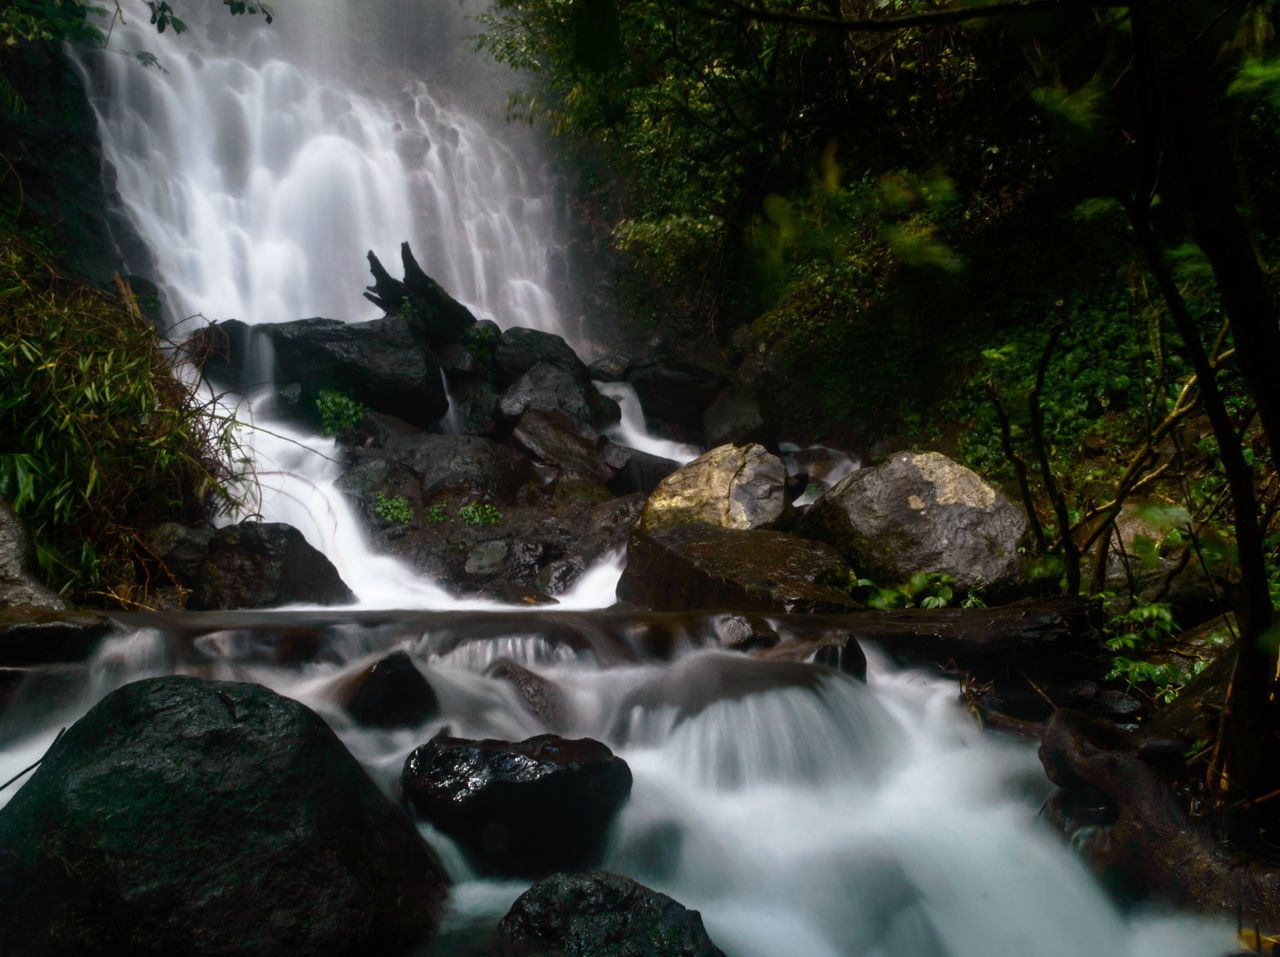 Cilember Waterfall 3th Beauty In Nature Blurred Motion Day Falls Flowing Water Forest INDONESIA Jakarta Long Exposure Motion Nature No People Outdoors Power In Nature Rapid River Rock - Object Scenics Tranquil Scene Tranquility Tree Tropical Tropical Climate Water Waterfall